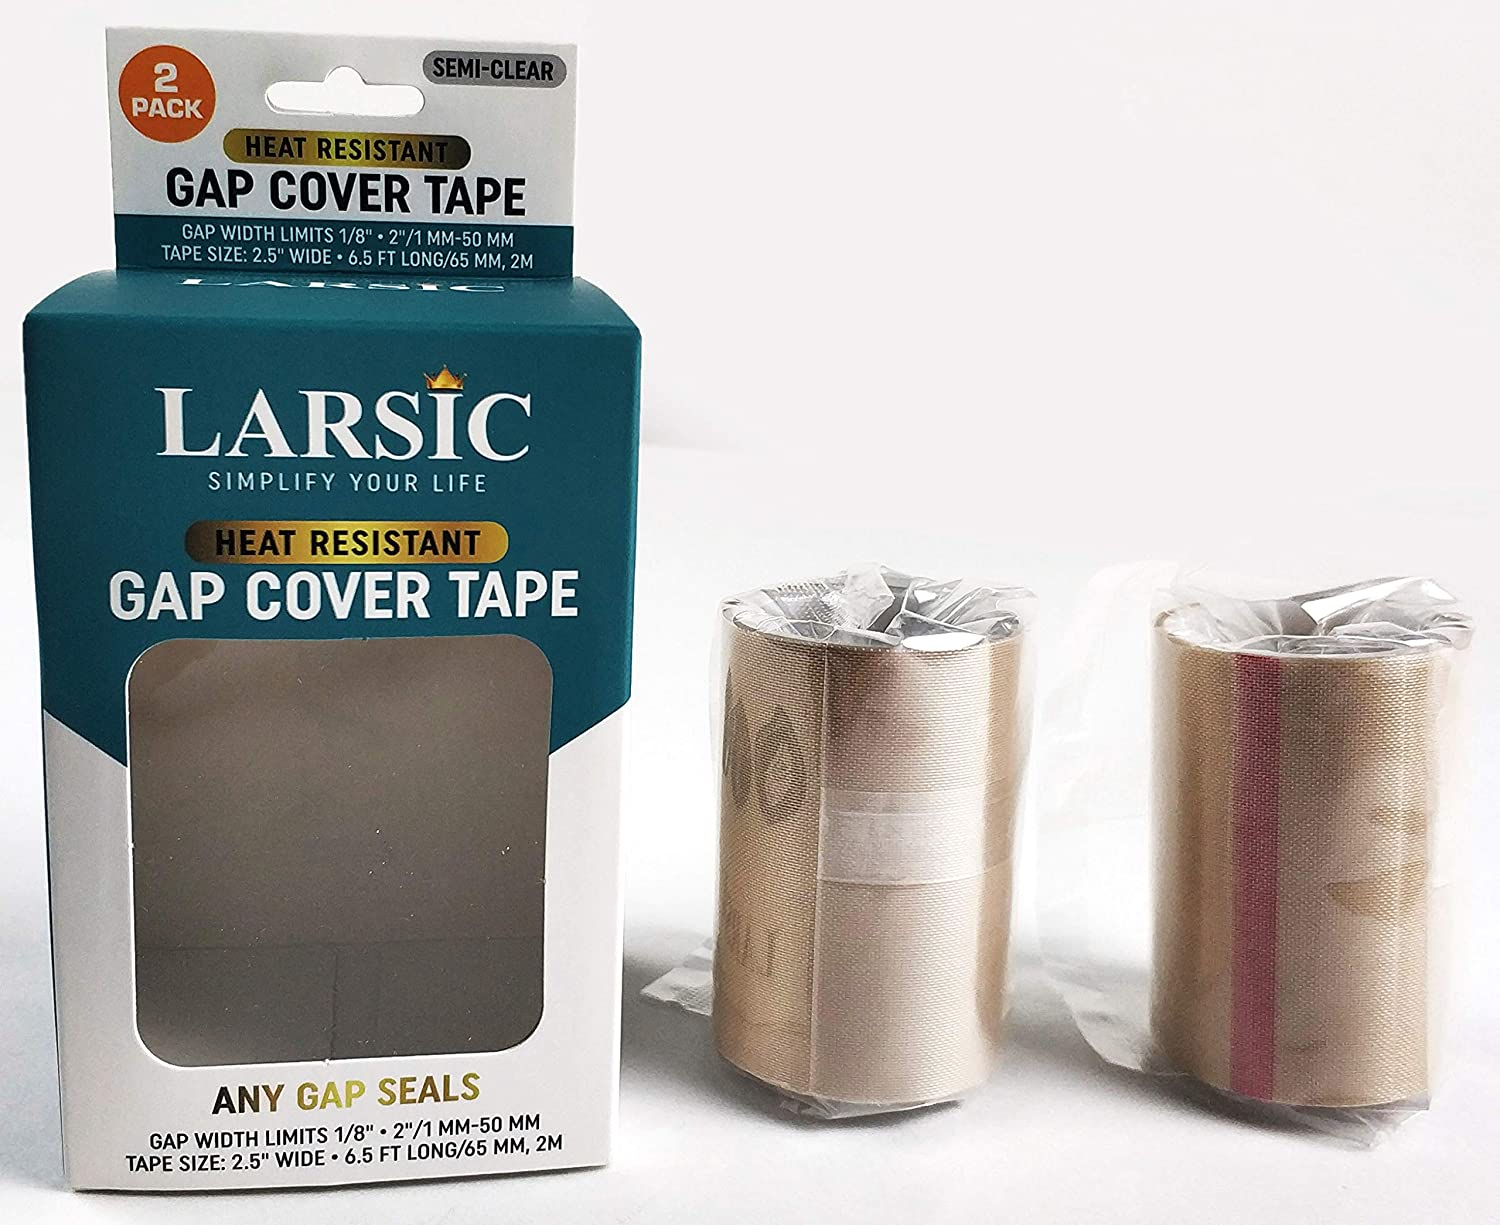 "Kitchen Stove Counter Gap Cover,Marble Tape Seals Between Counter Range,Burner,Washer,Dryer,Extra Wide & Long,Heat Resistant,Waterproof Tape Set of 2 (2.5""X78"", Semi Clear)"